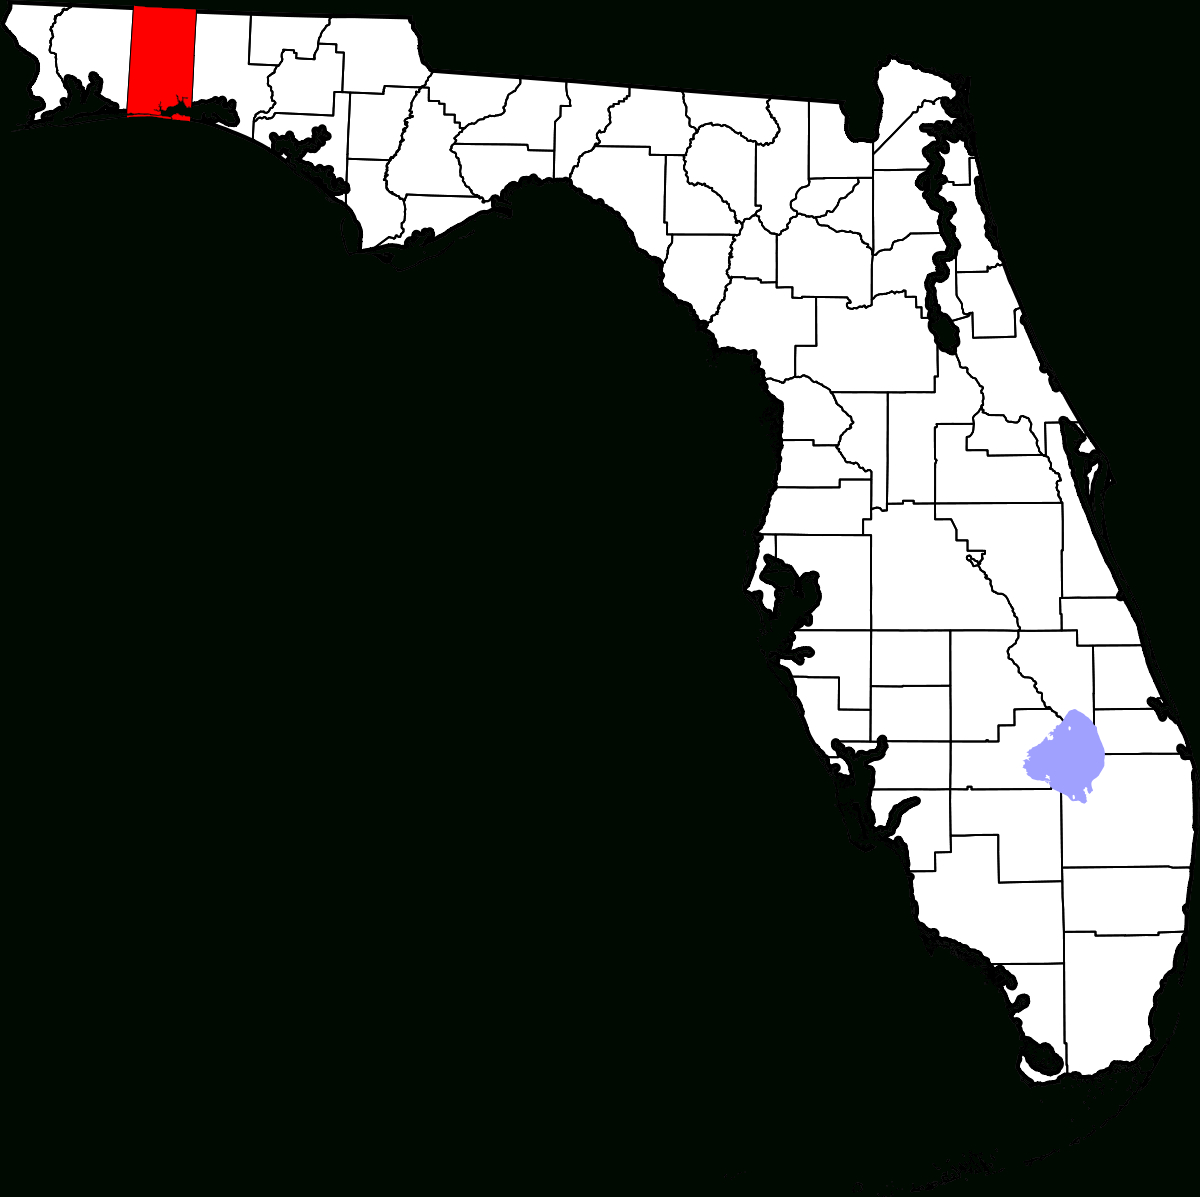 National Register Of Historic Places Listings In Okaloosa County - Where Is Fort Walton Beach Florida On The Map